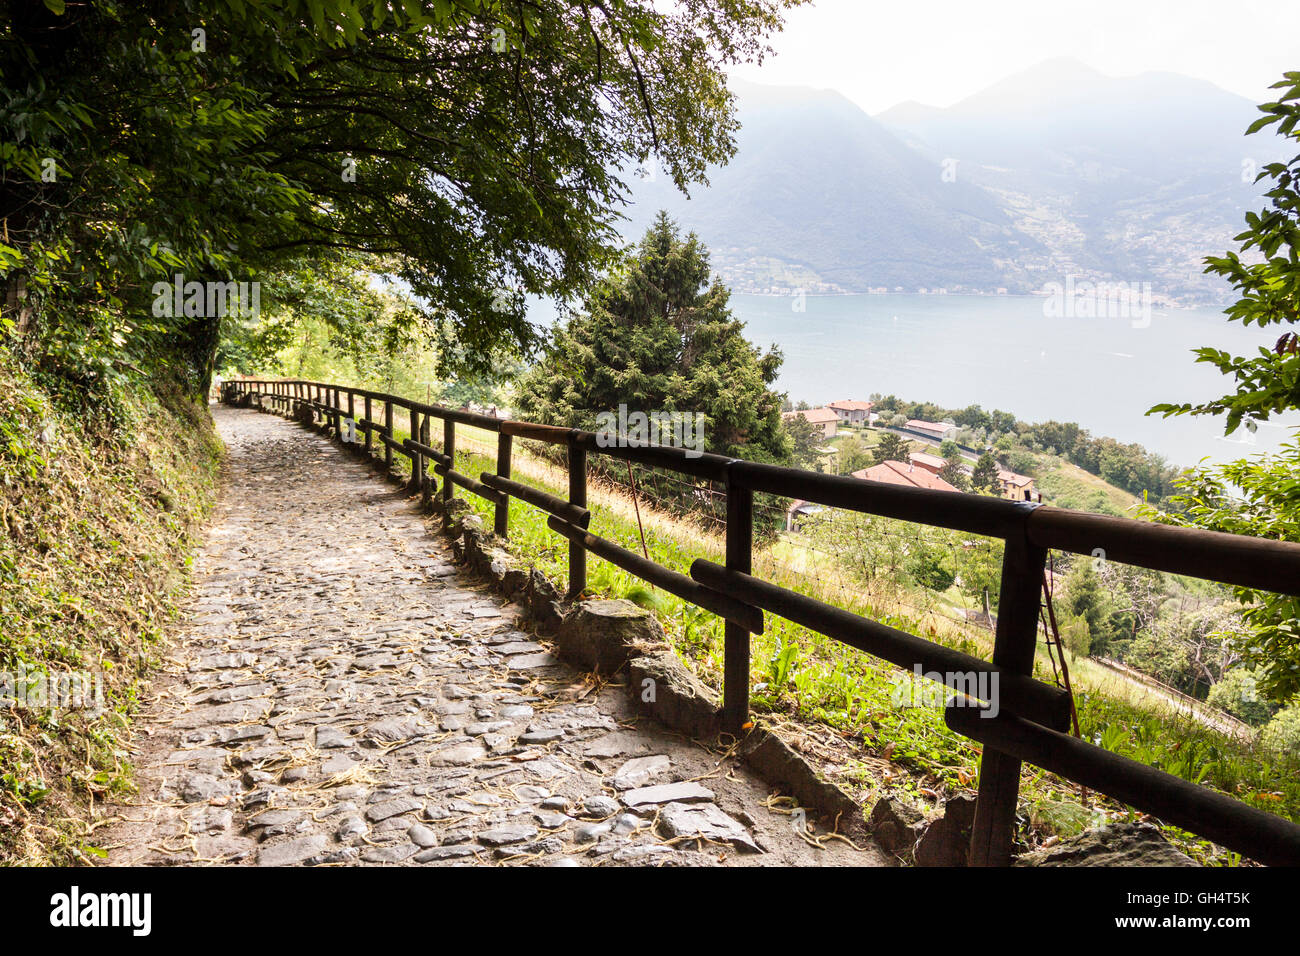 Typical street of Monte isola. Sulzano, Lombardy. Italy - Stock Image